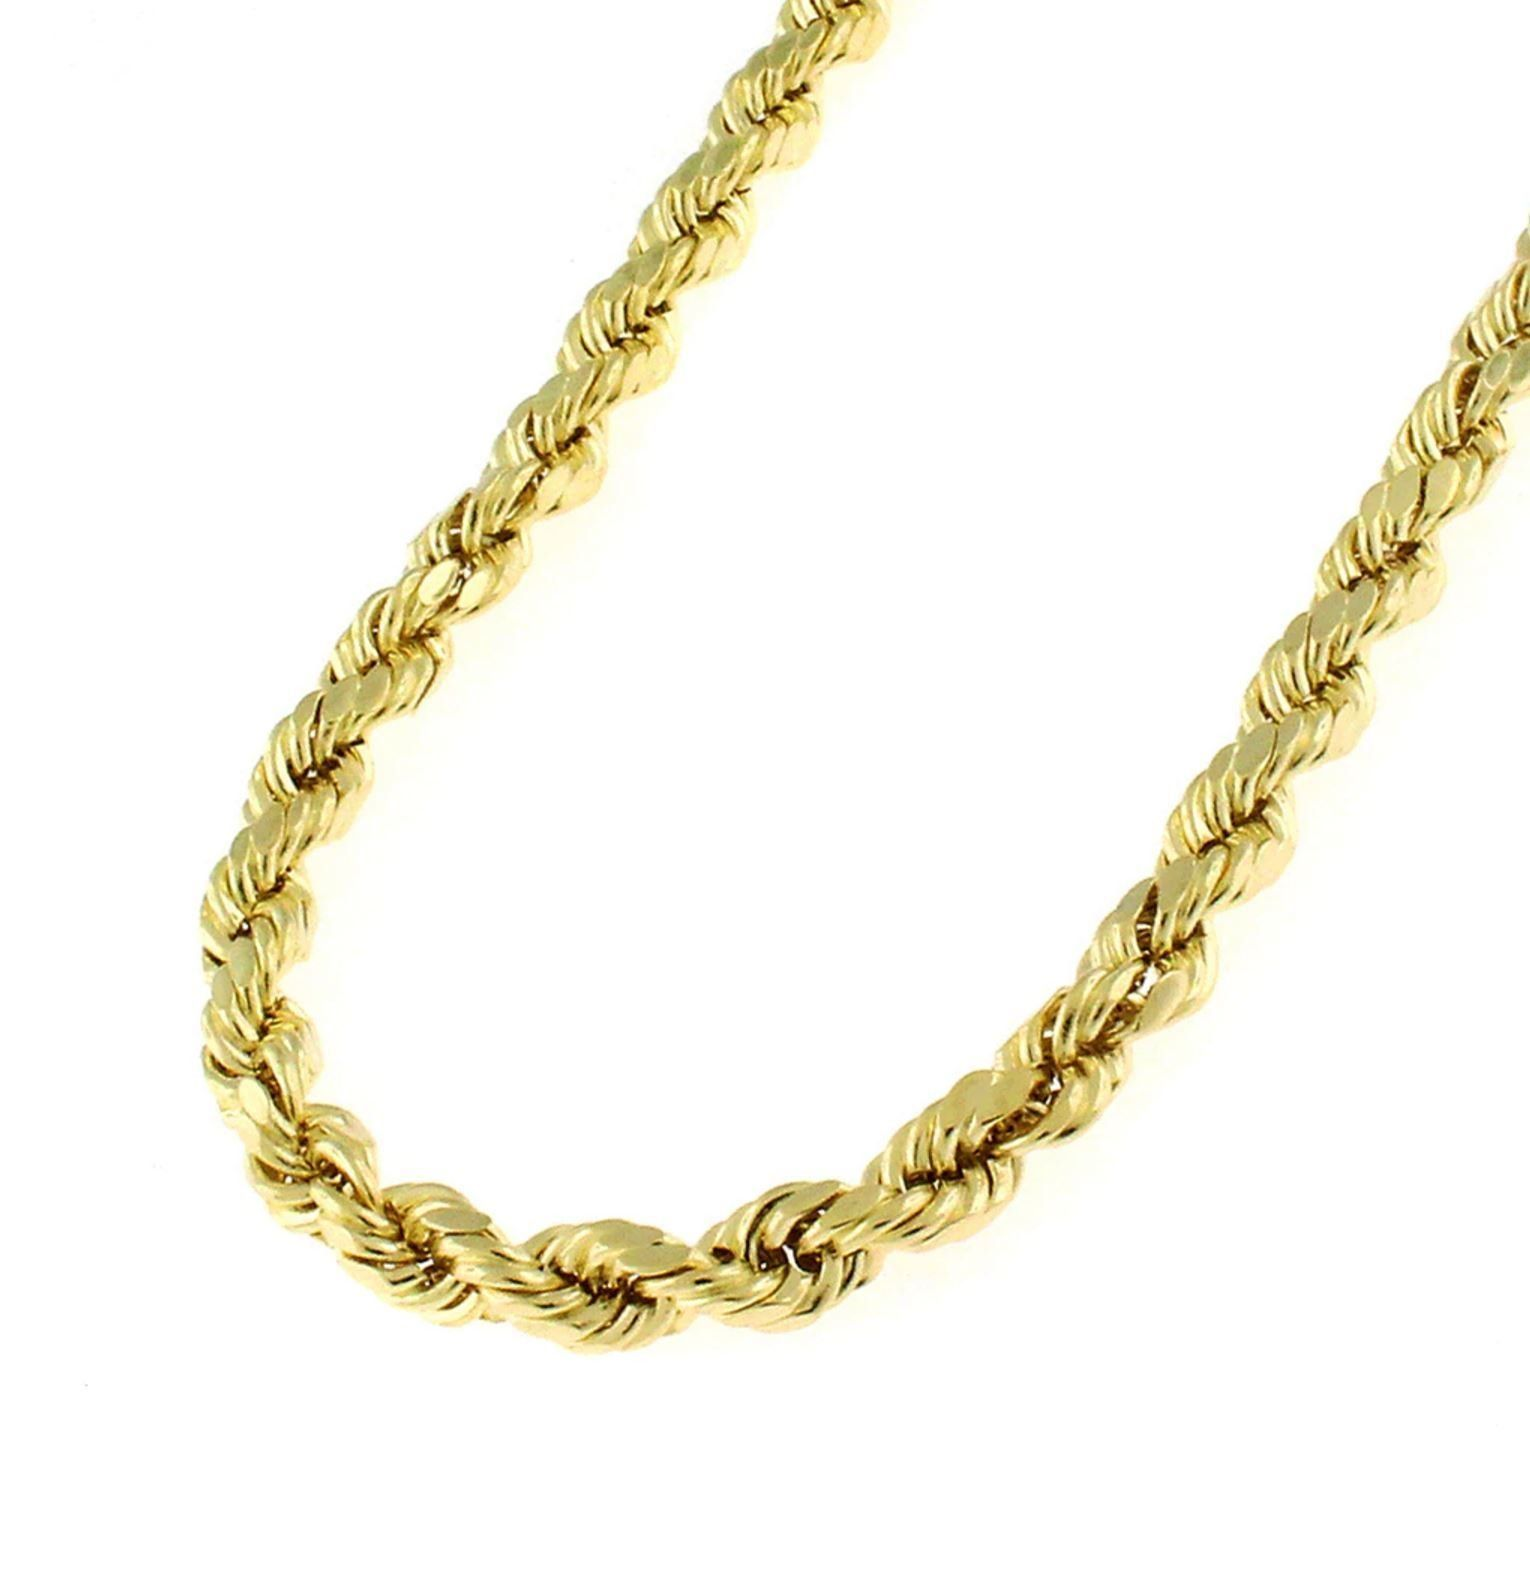 2mm 14K Solid Yellow Gold 1.5mm or 3.2mm Diamond Cut Rope Chain Necklace Unisex Sizes 16-30